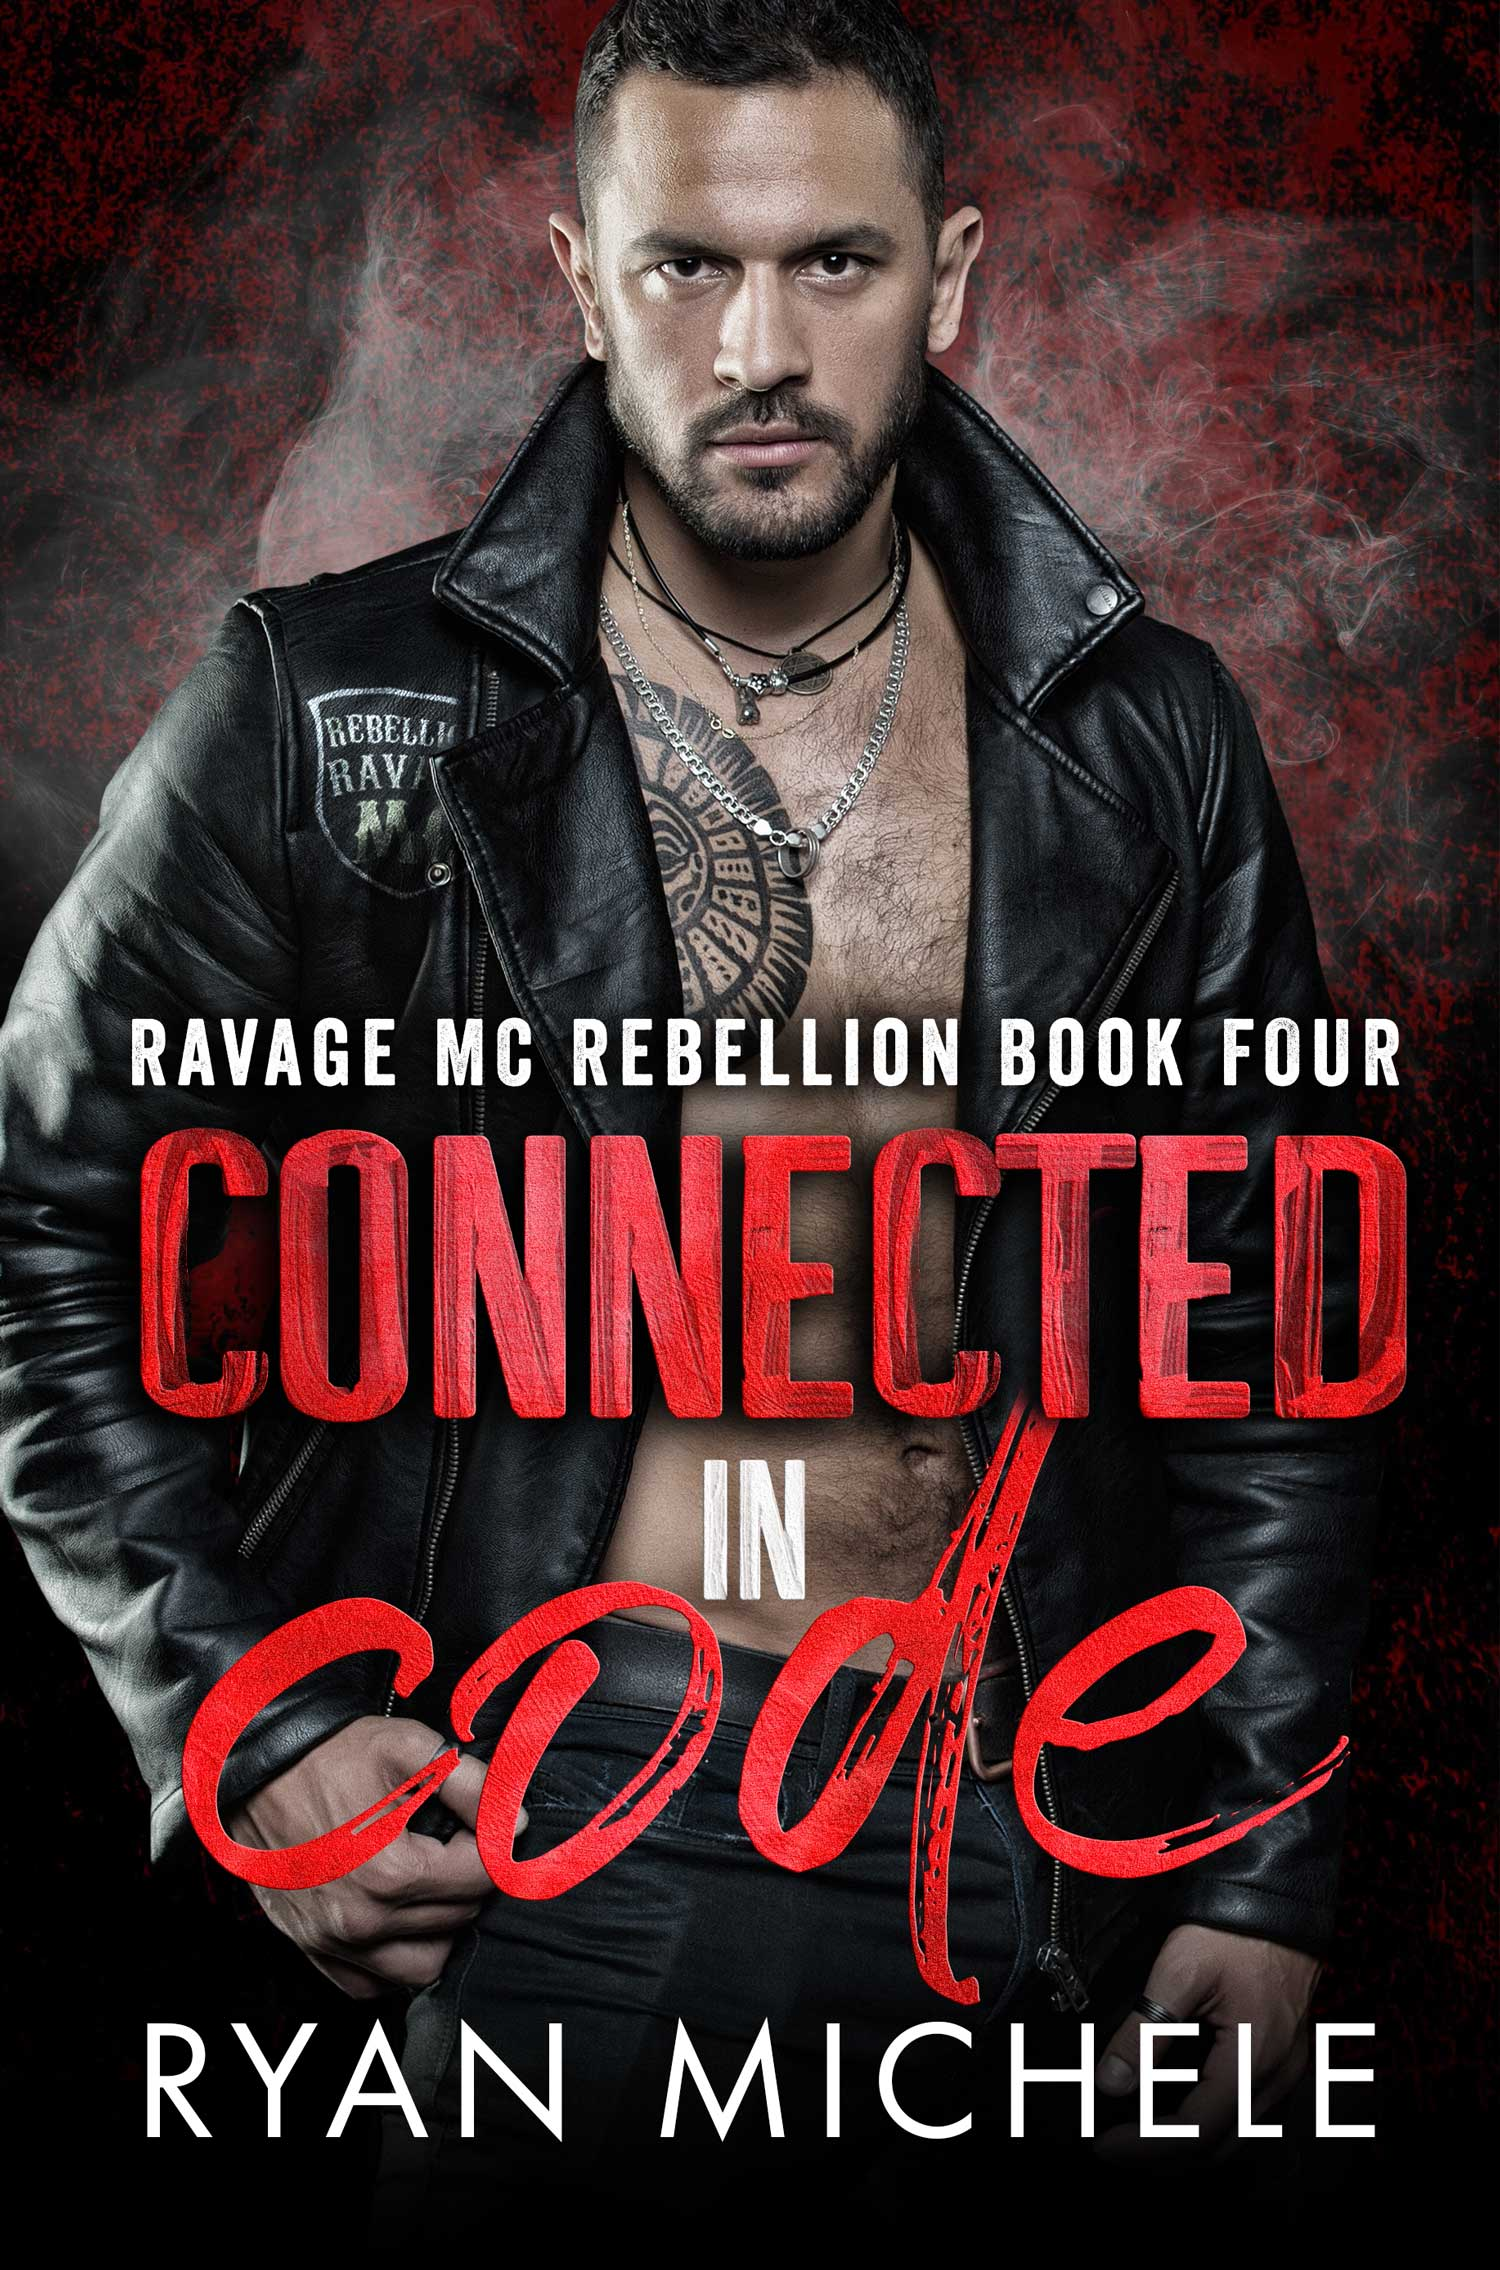 First Chapters of Connected in Code! - Author Ryan Michele